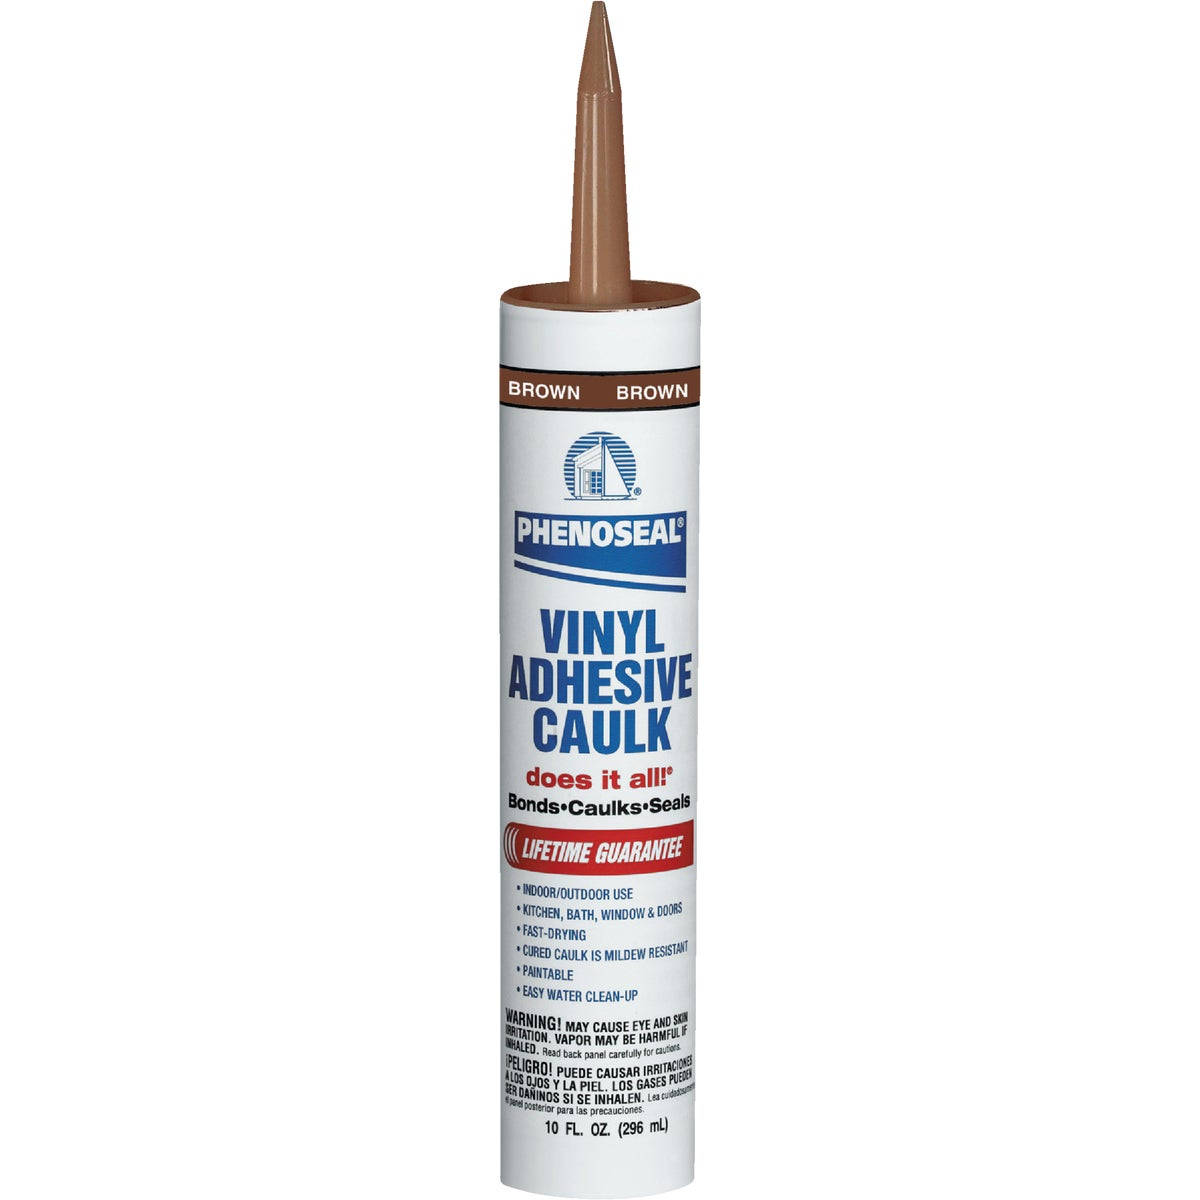 BROWN ADHESIVE CAULK - 09102 by Dap Inc